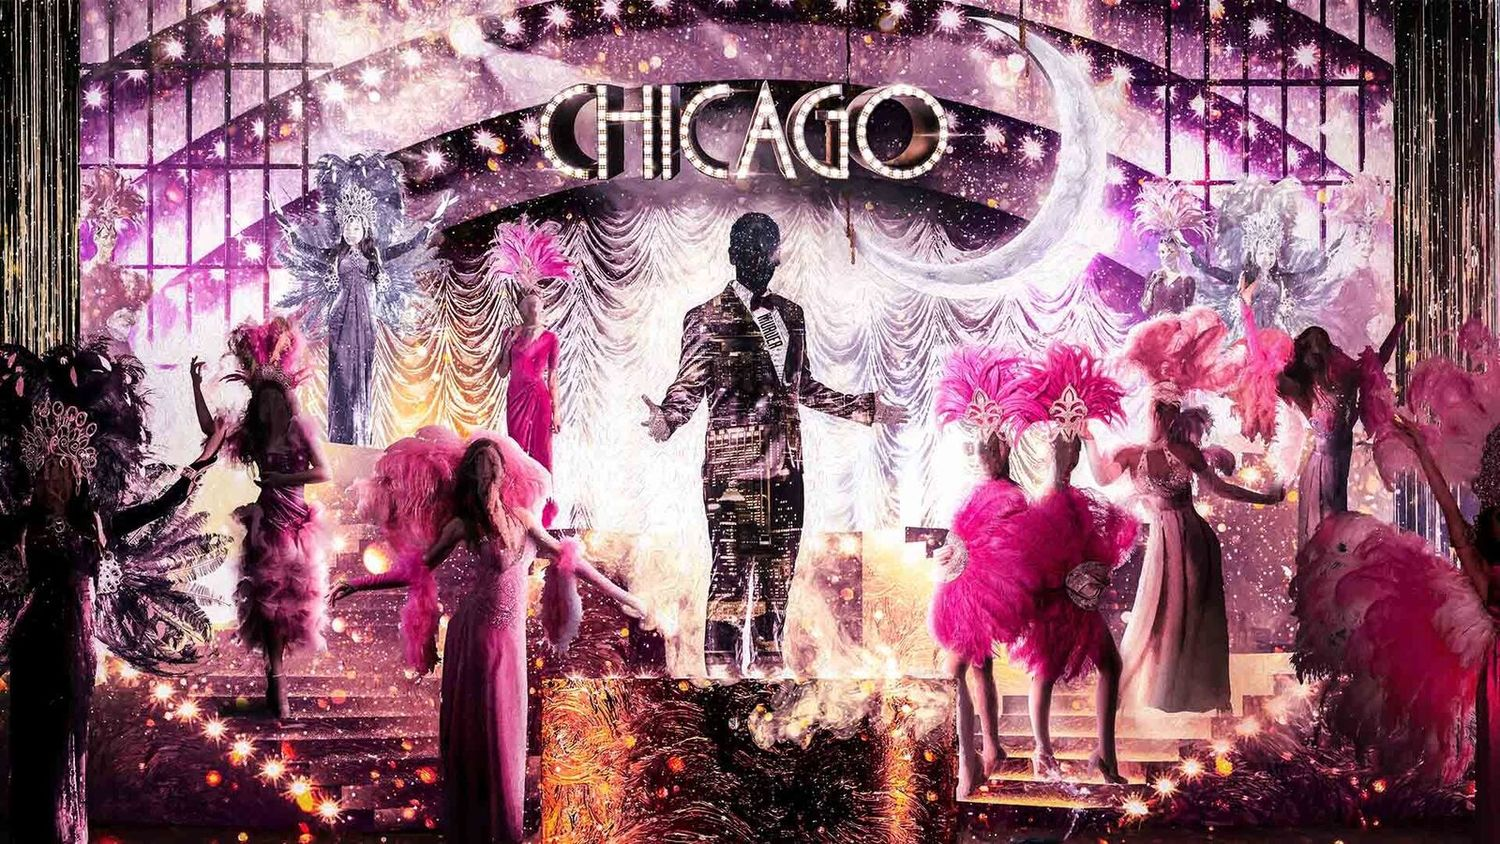 BWW Review: CHICAGO at Fulton Theatre